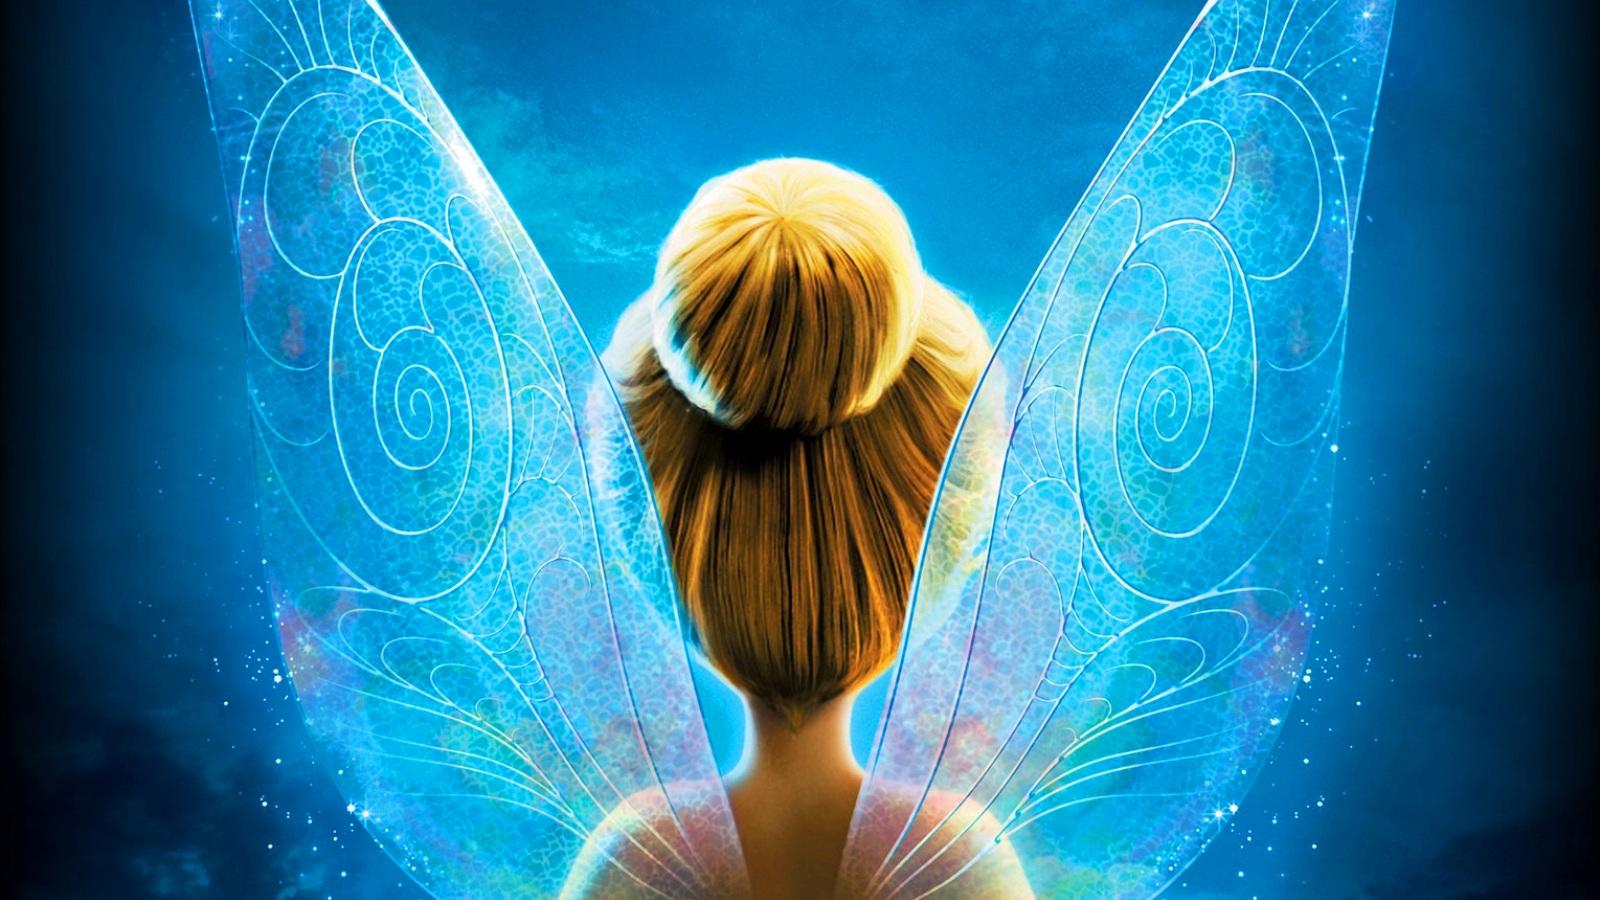 TinkerBell Secret Of The Wings HD wallpapers   TinkerBell Secret Of 1600x900